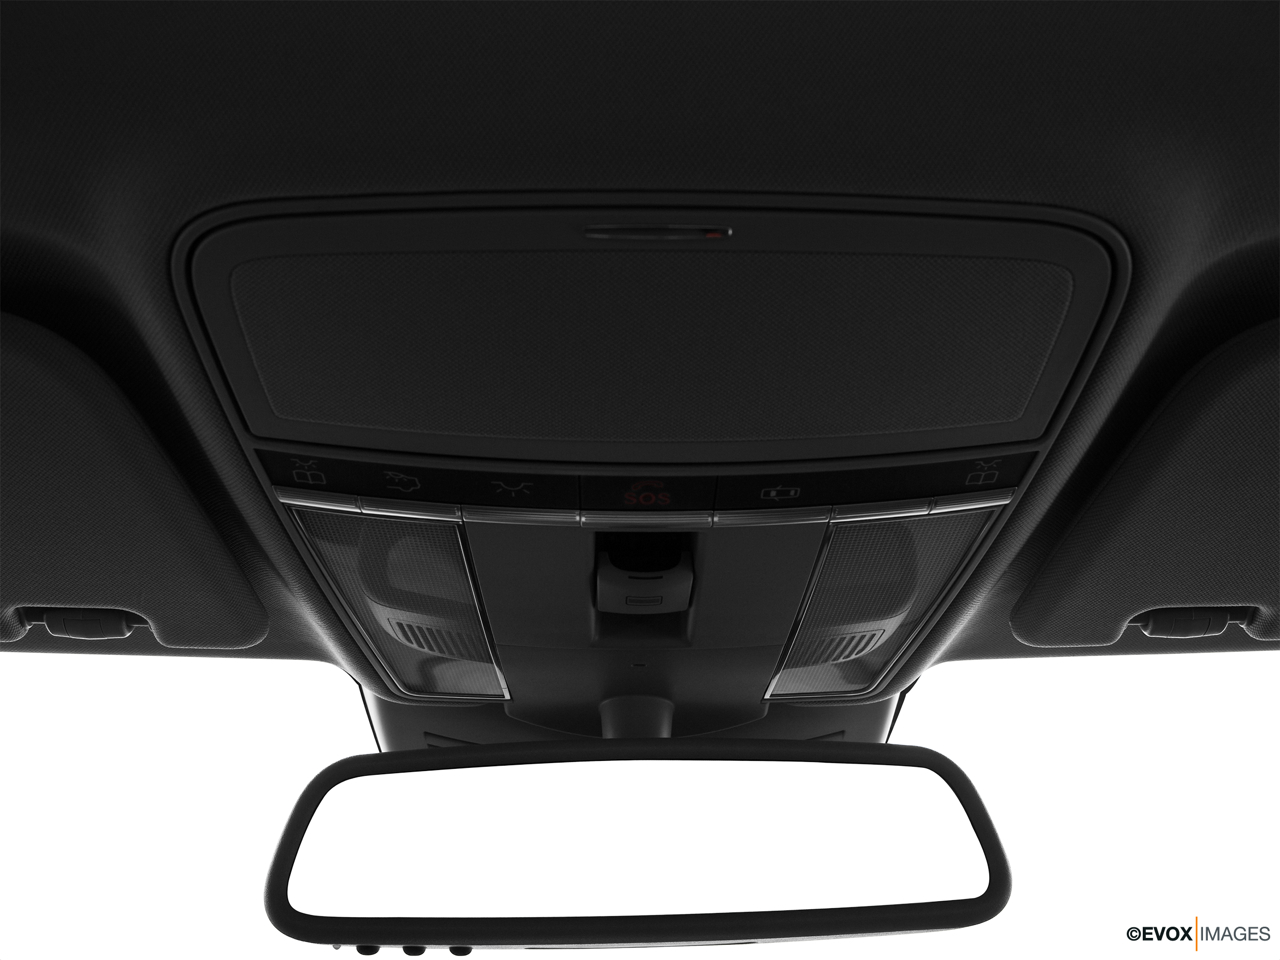 2010 Mercedes-Benz S-Class Hybrid S400 Courtesy lamps/ceiling controls.